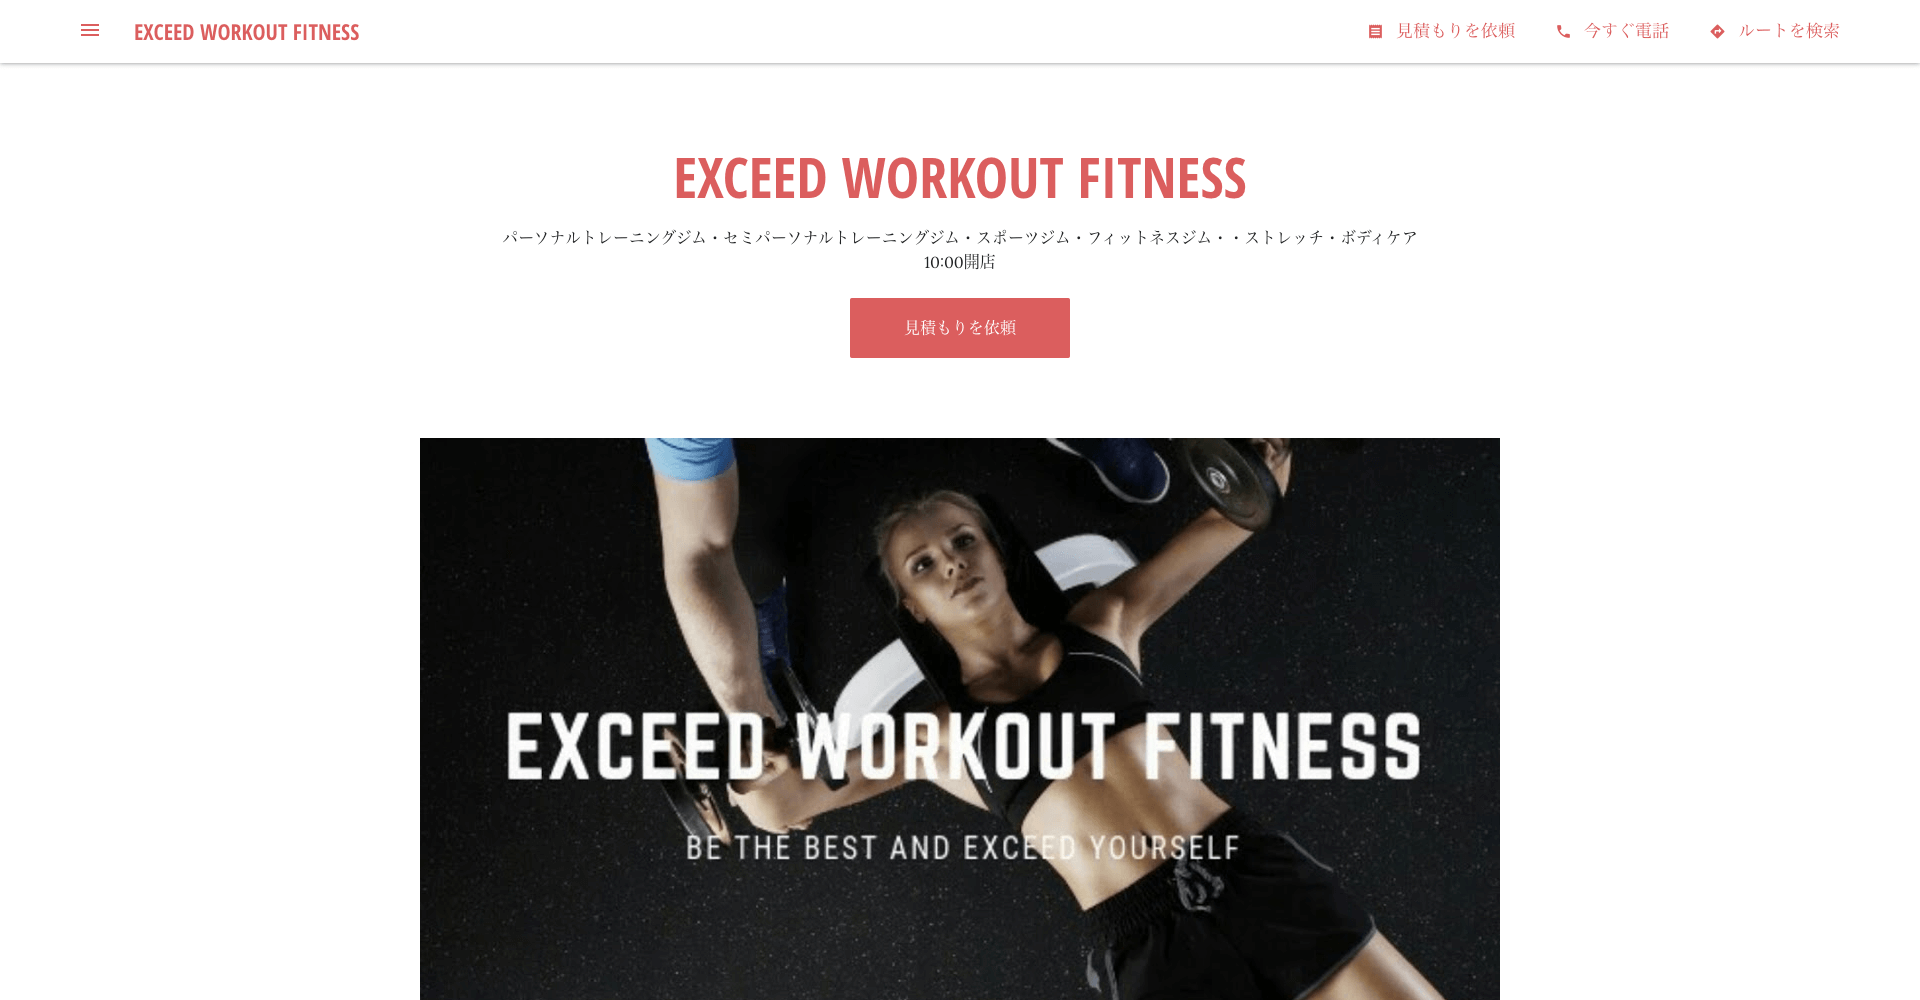 EXCEED WORKOUT FITNESS